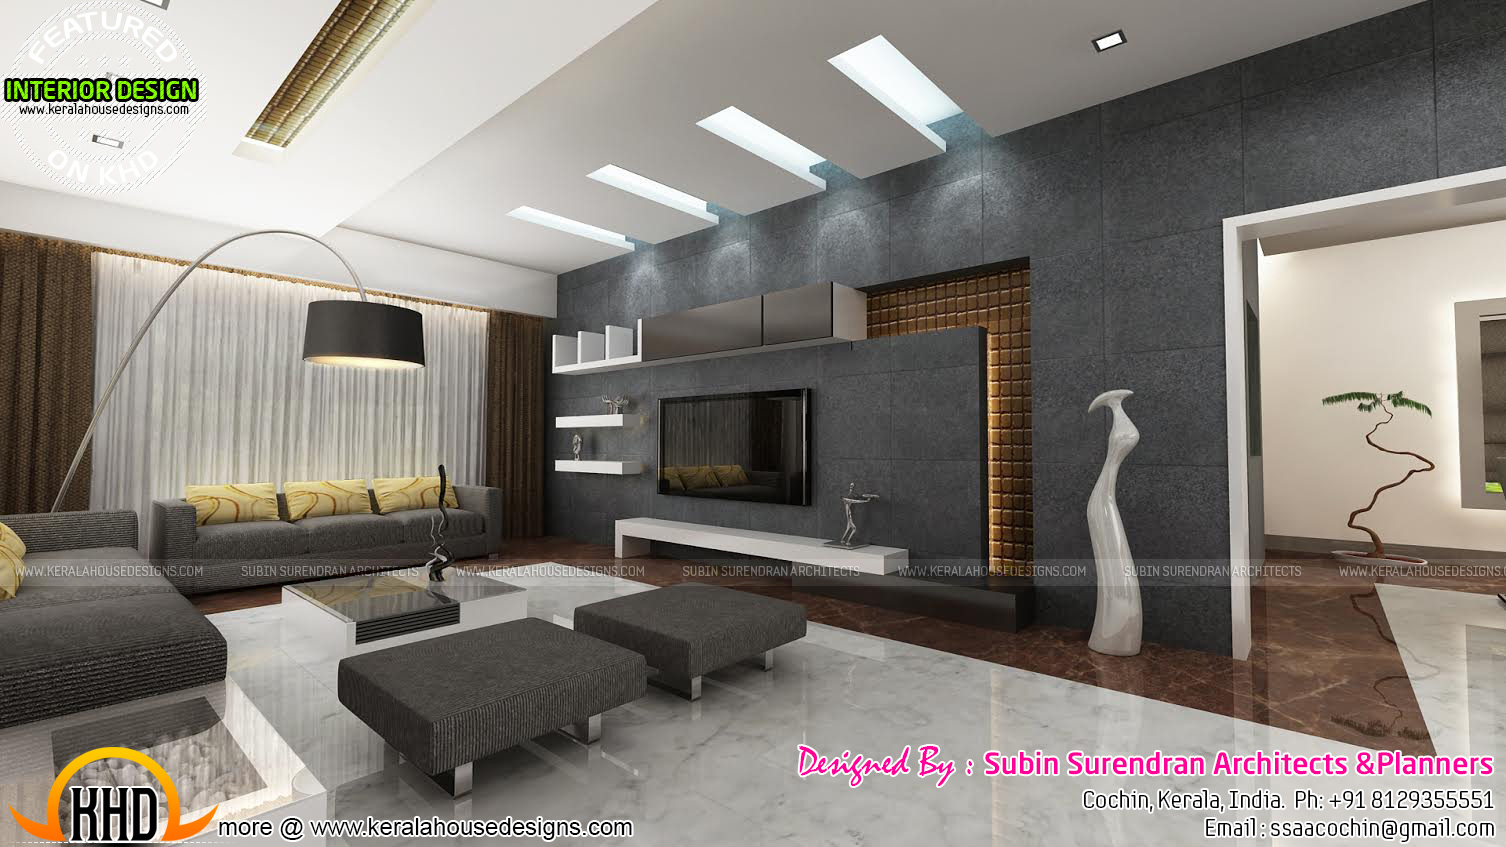 Home Interior Design Ideas Kerala: Living Rooms, Modern Kitchen Interiors In Kerala